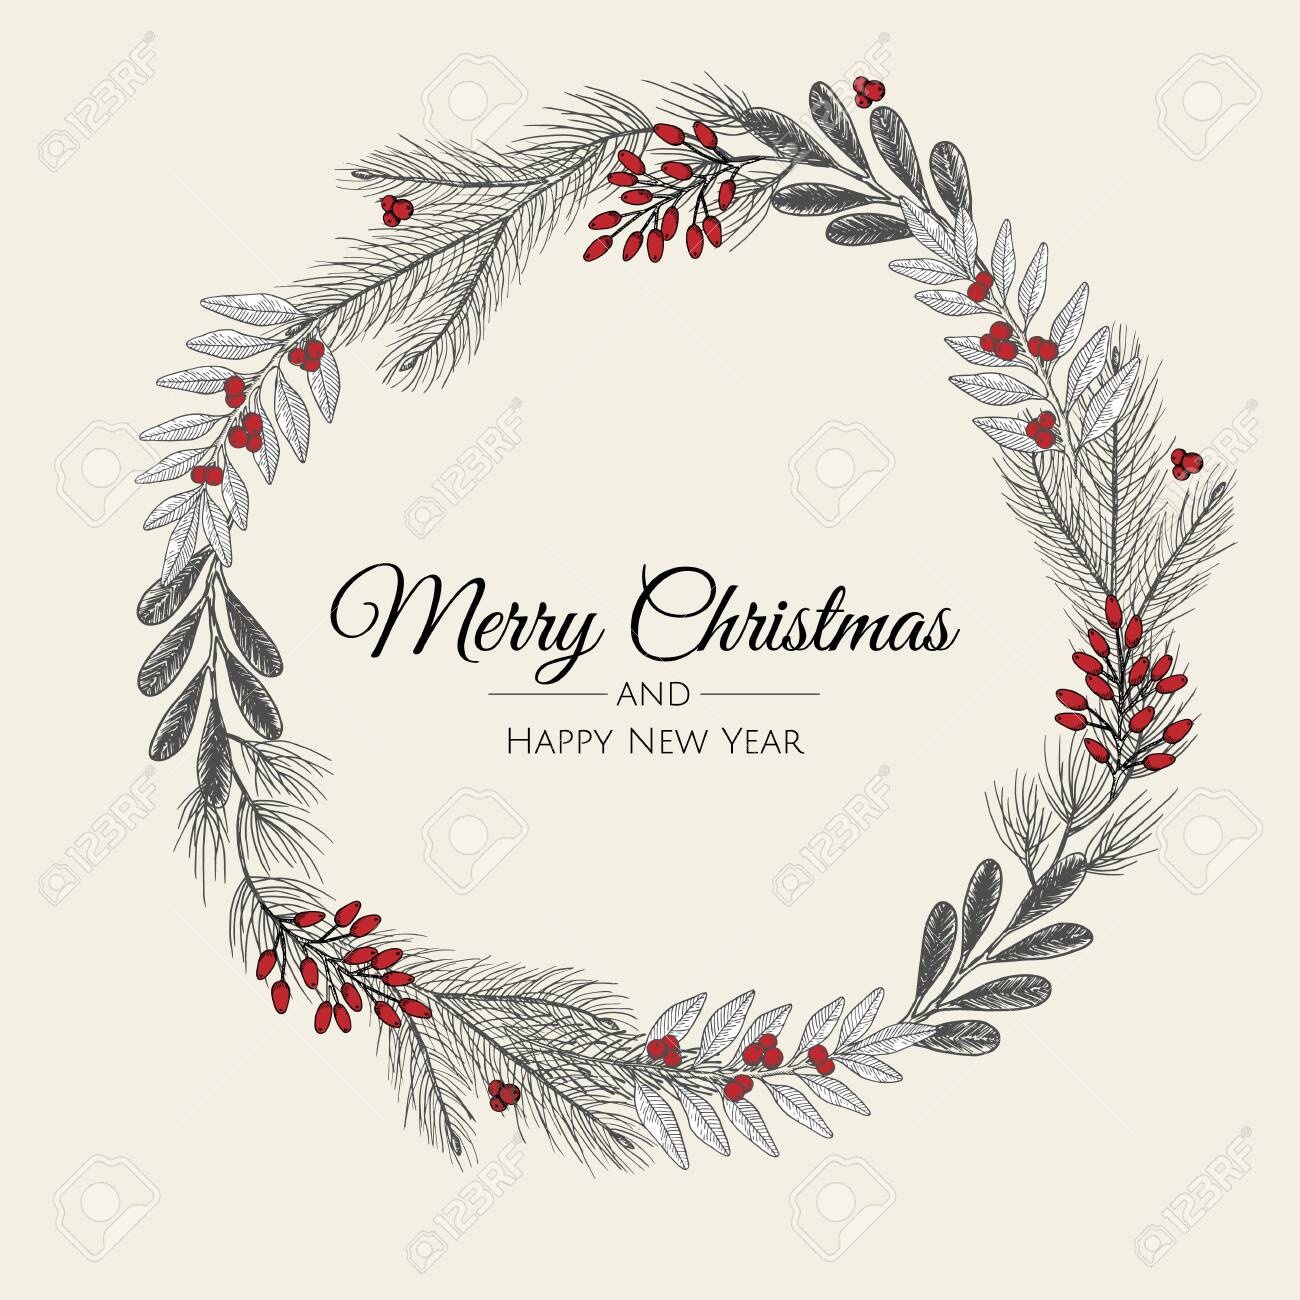 Hand Drawn Christmas Wreath Vector Holiday Illustration Royalty Free Cliparts Vectors And Stock Illustration Image 155902868